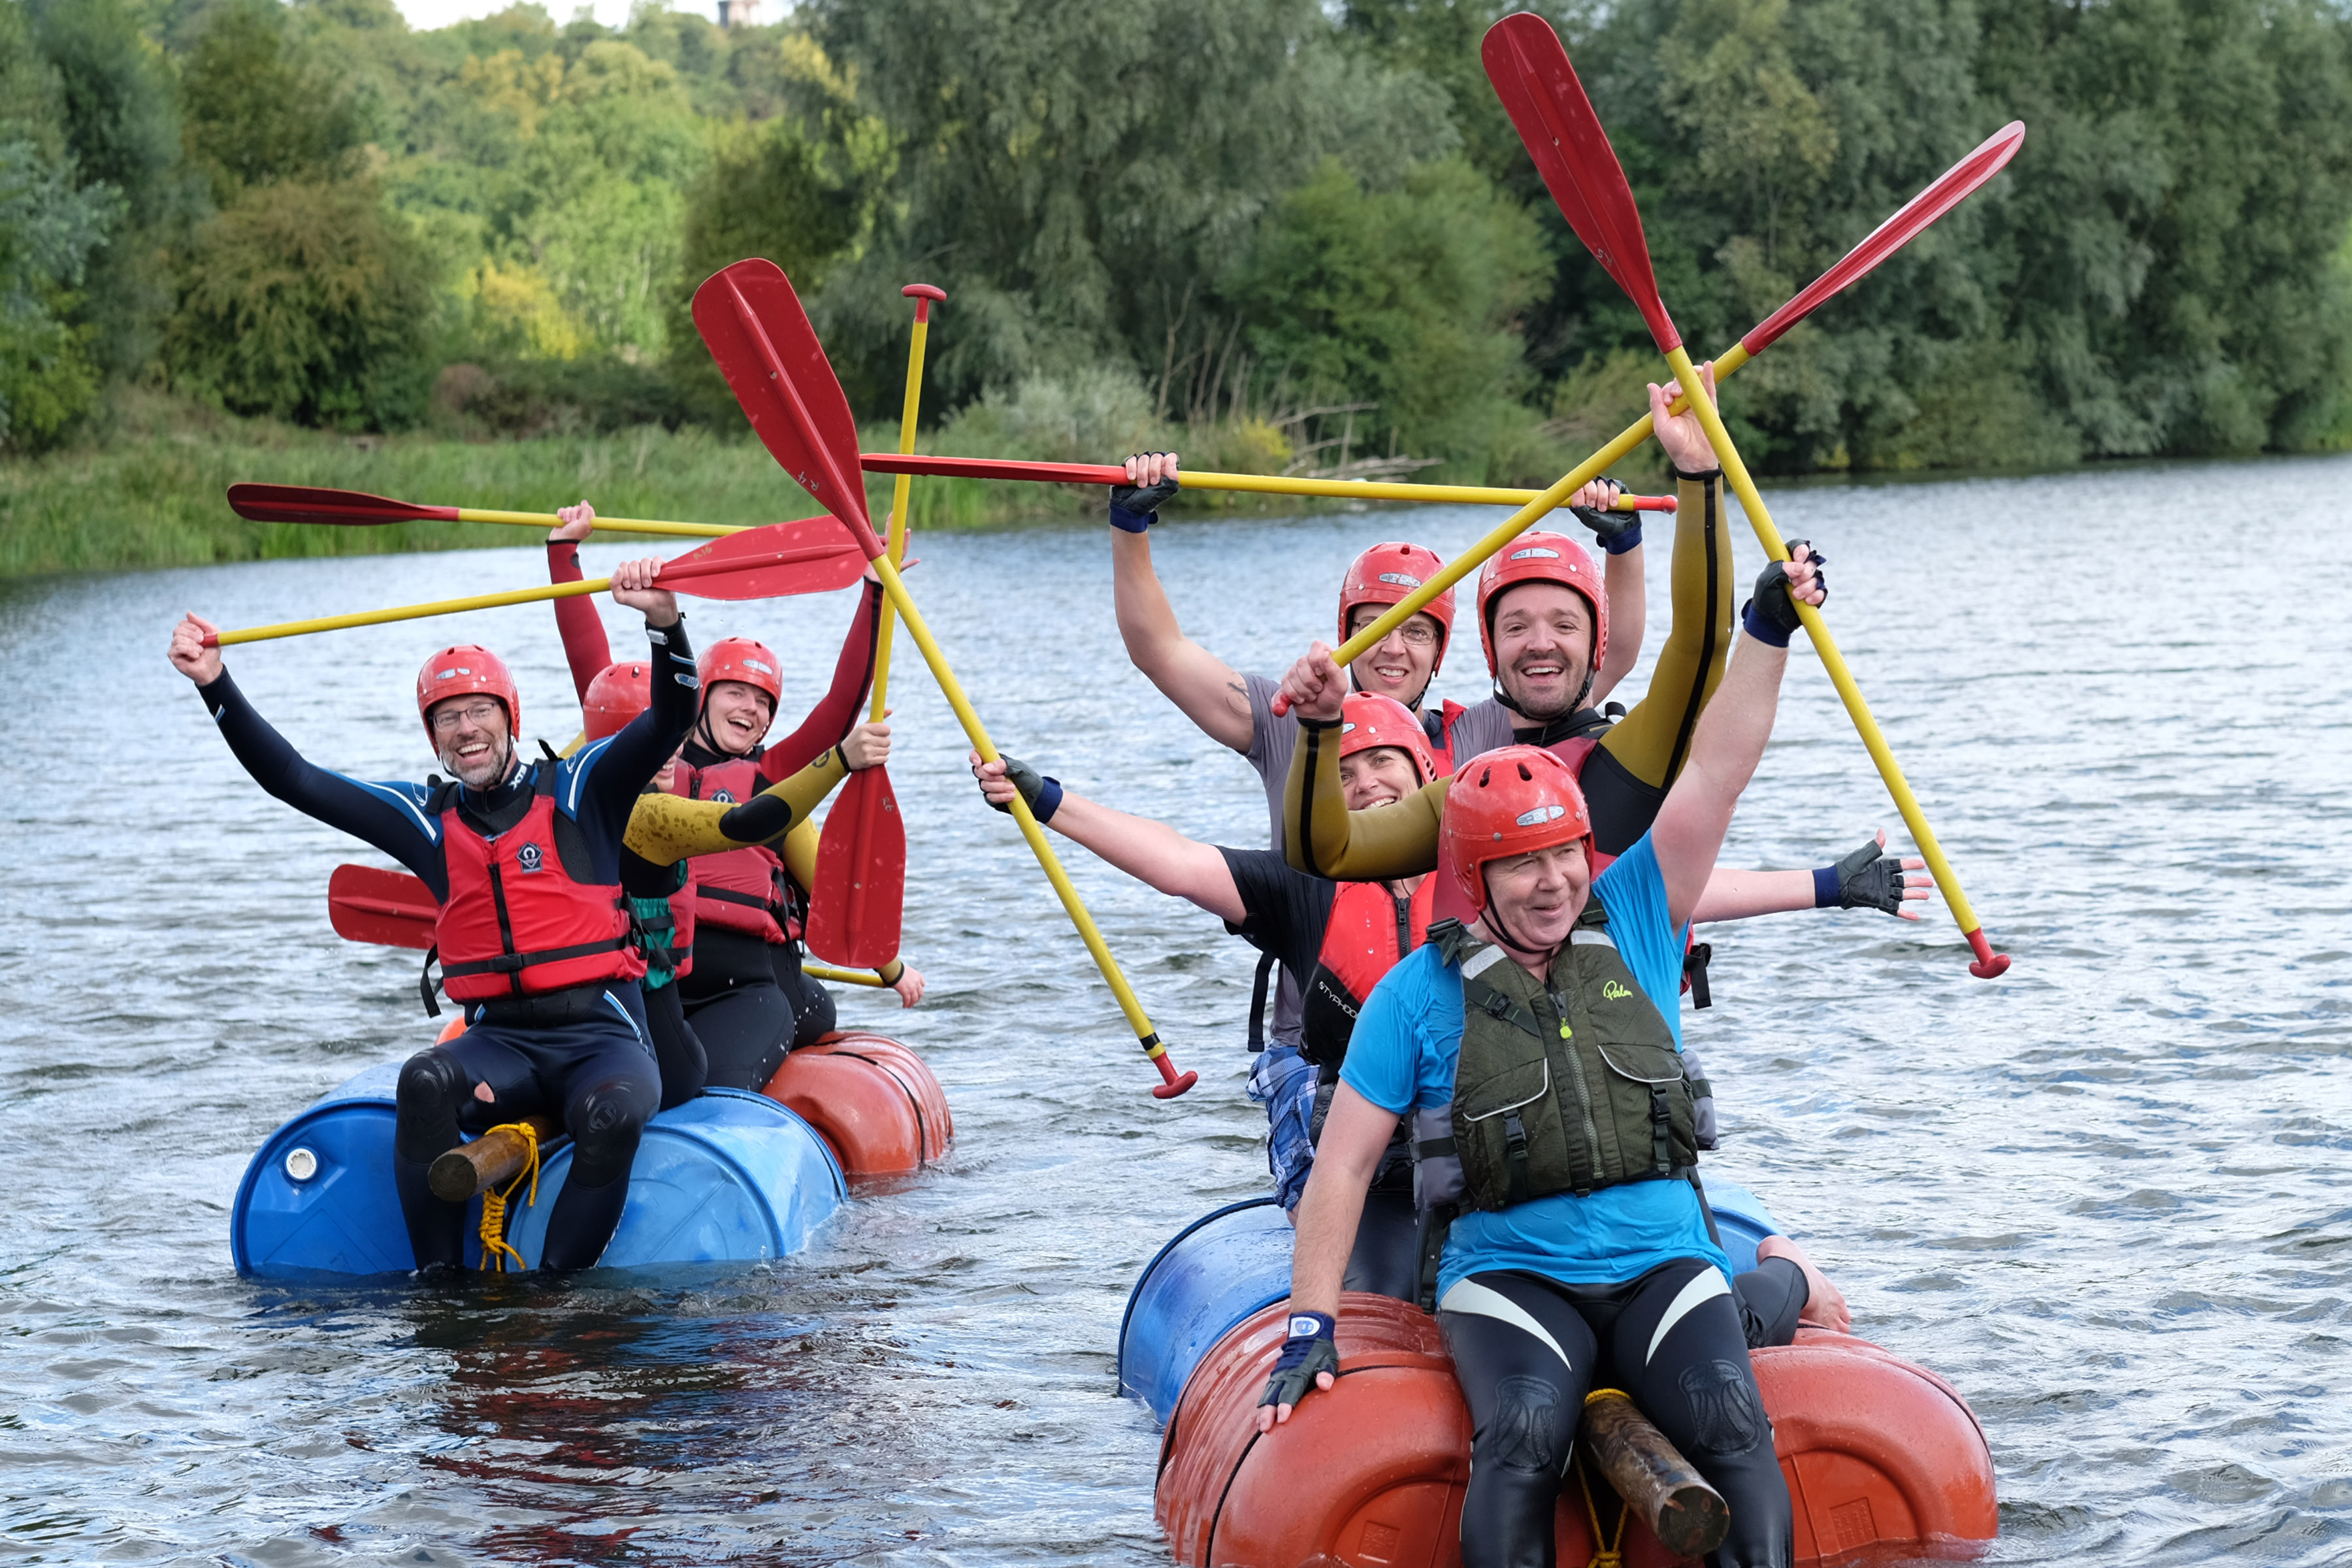 Teams tackle water challenge for Boudicca Appeal